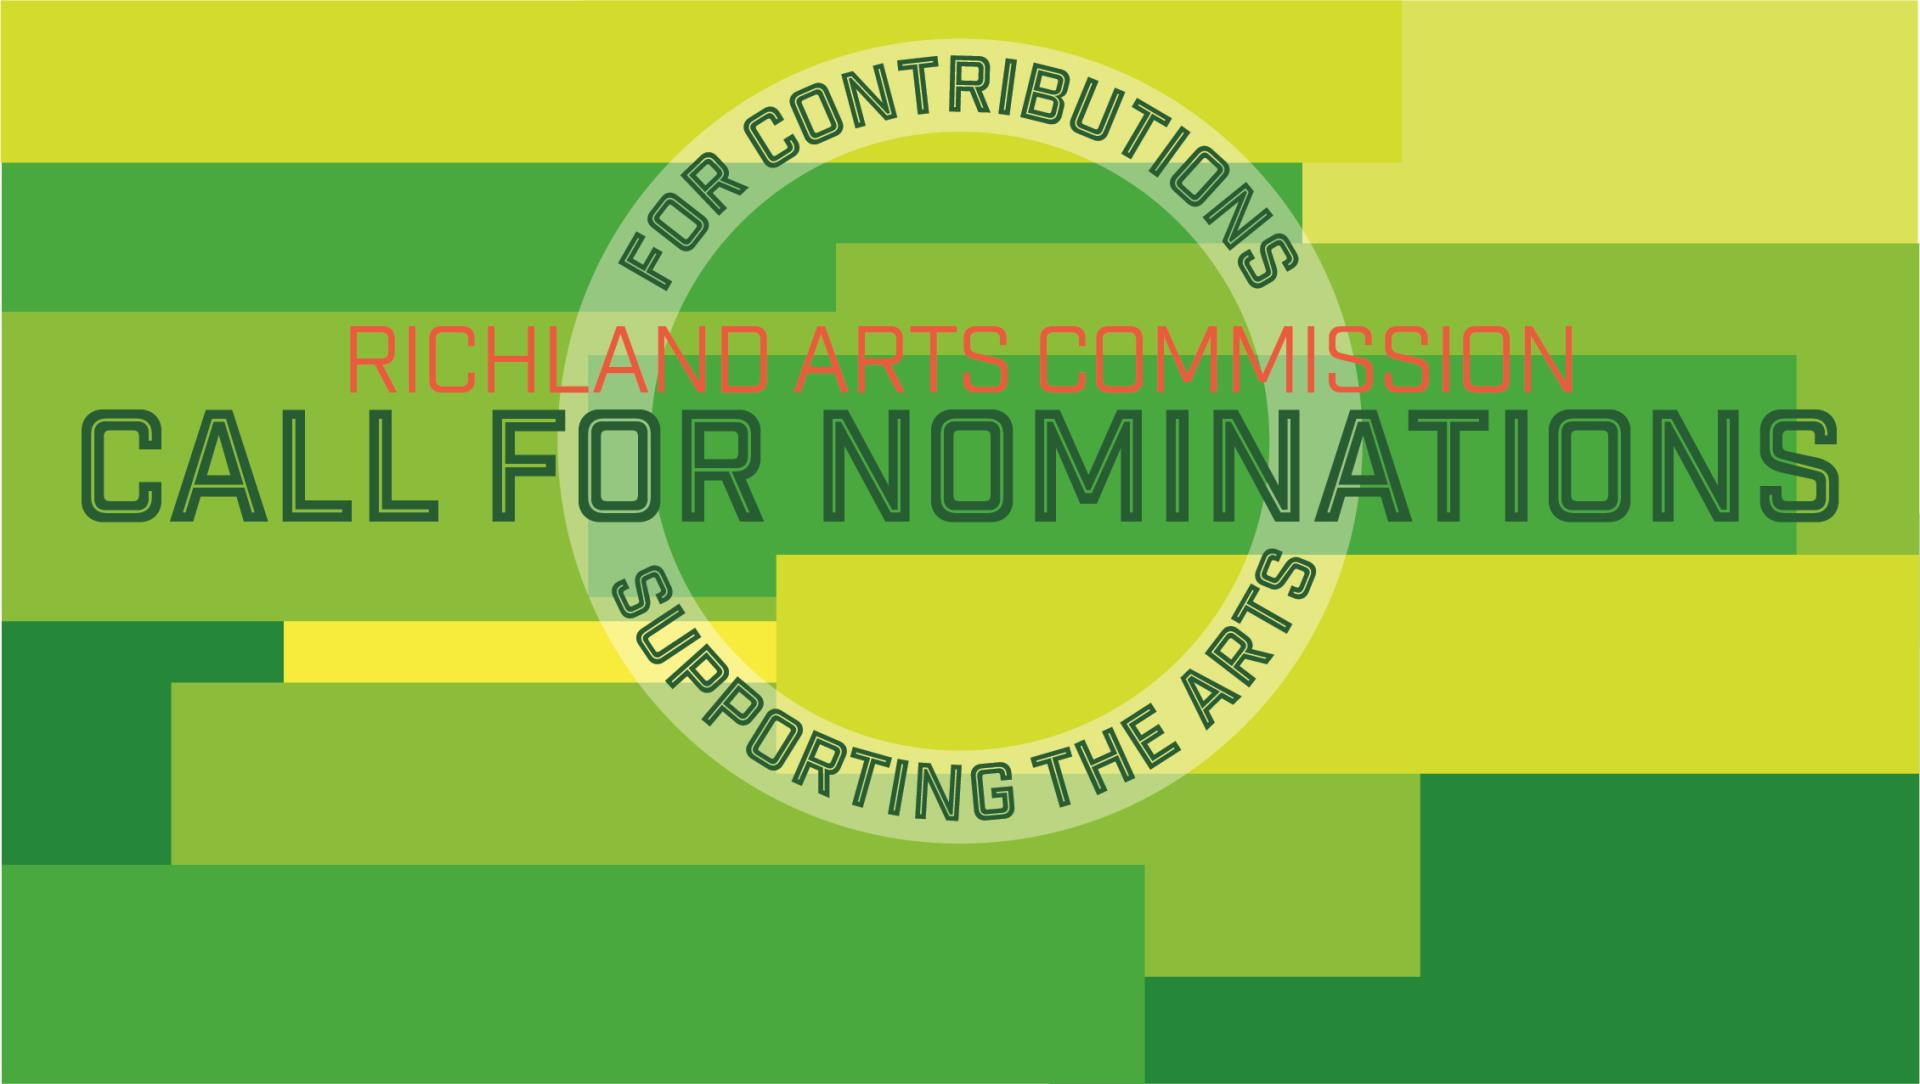 Richland Seeking Nominations for Art Recognition